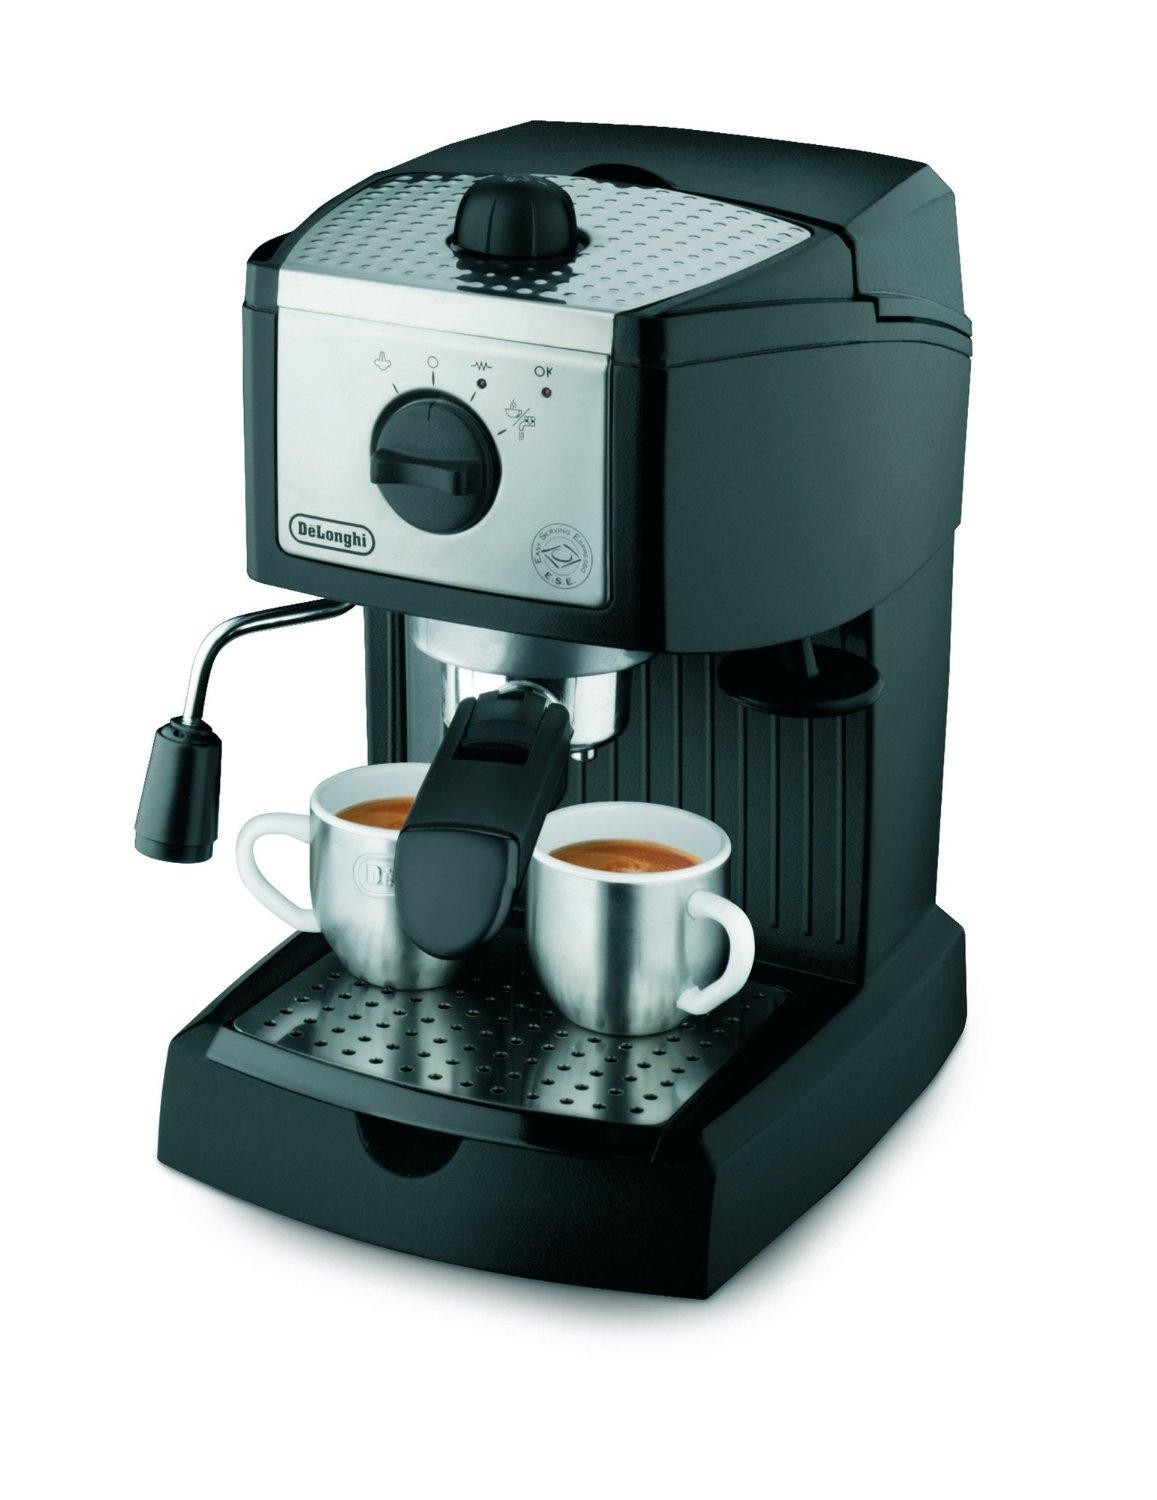 Delonghi%20EC156.B%20Traditional%20Pump%20Espresso%20Coffee%20Machine.jpg